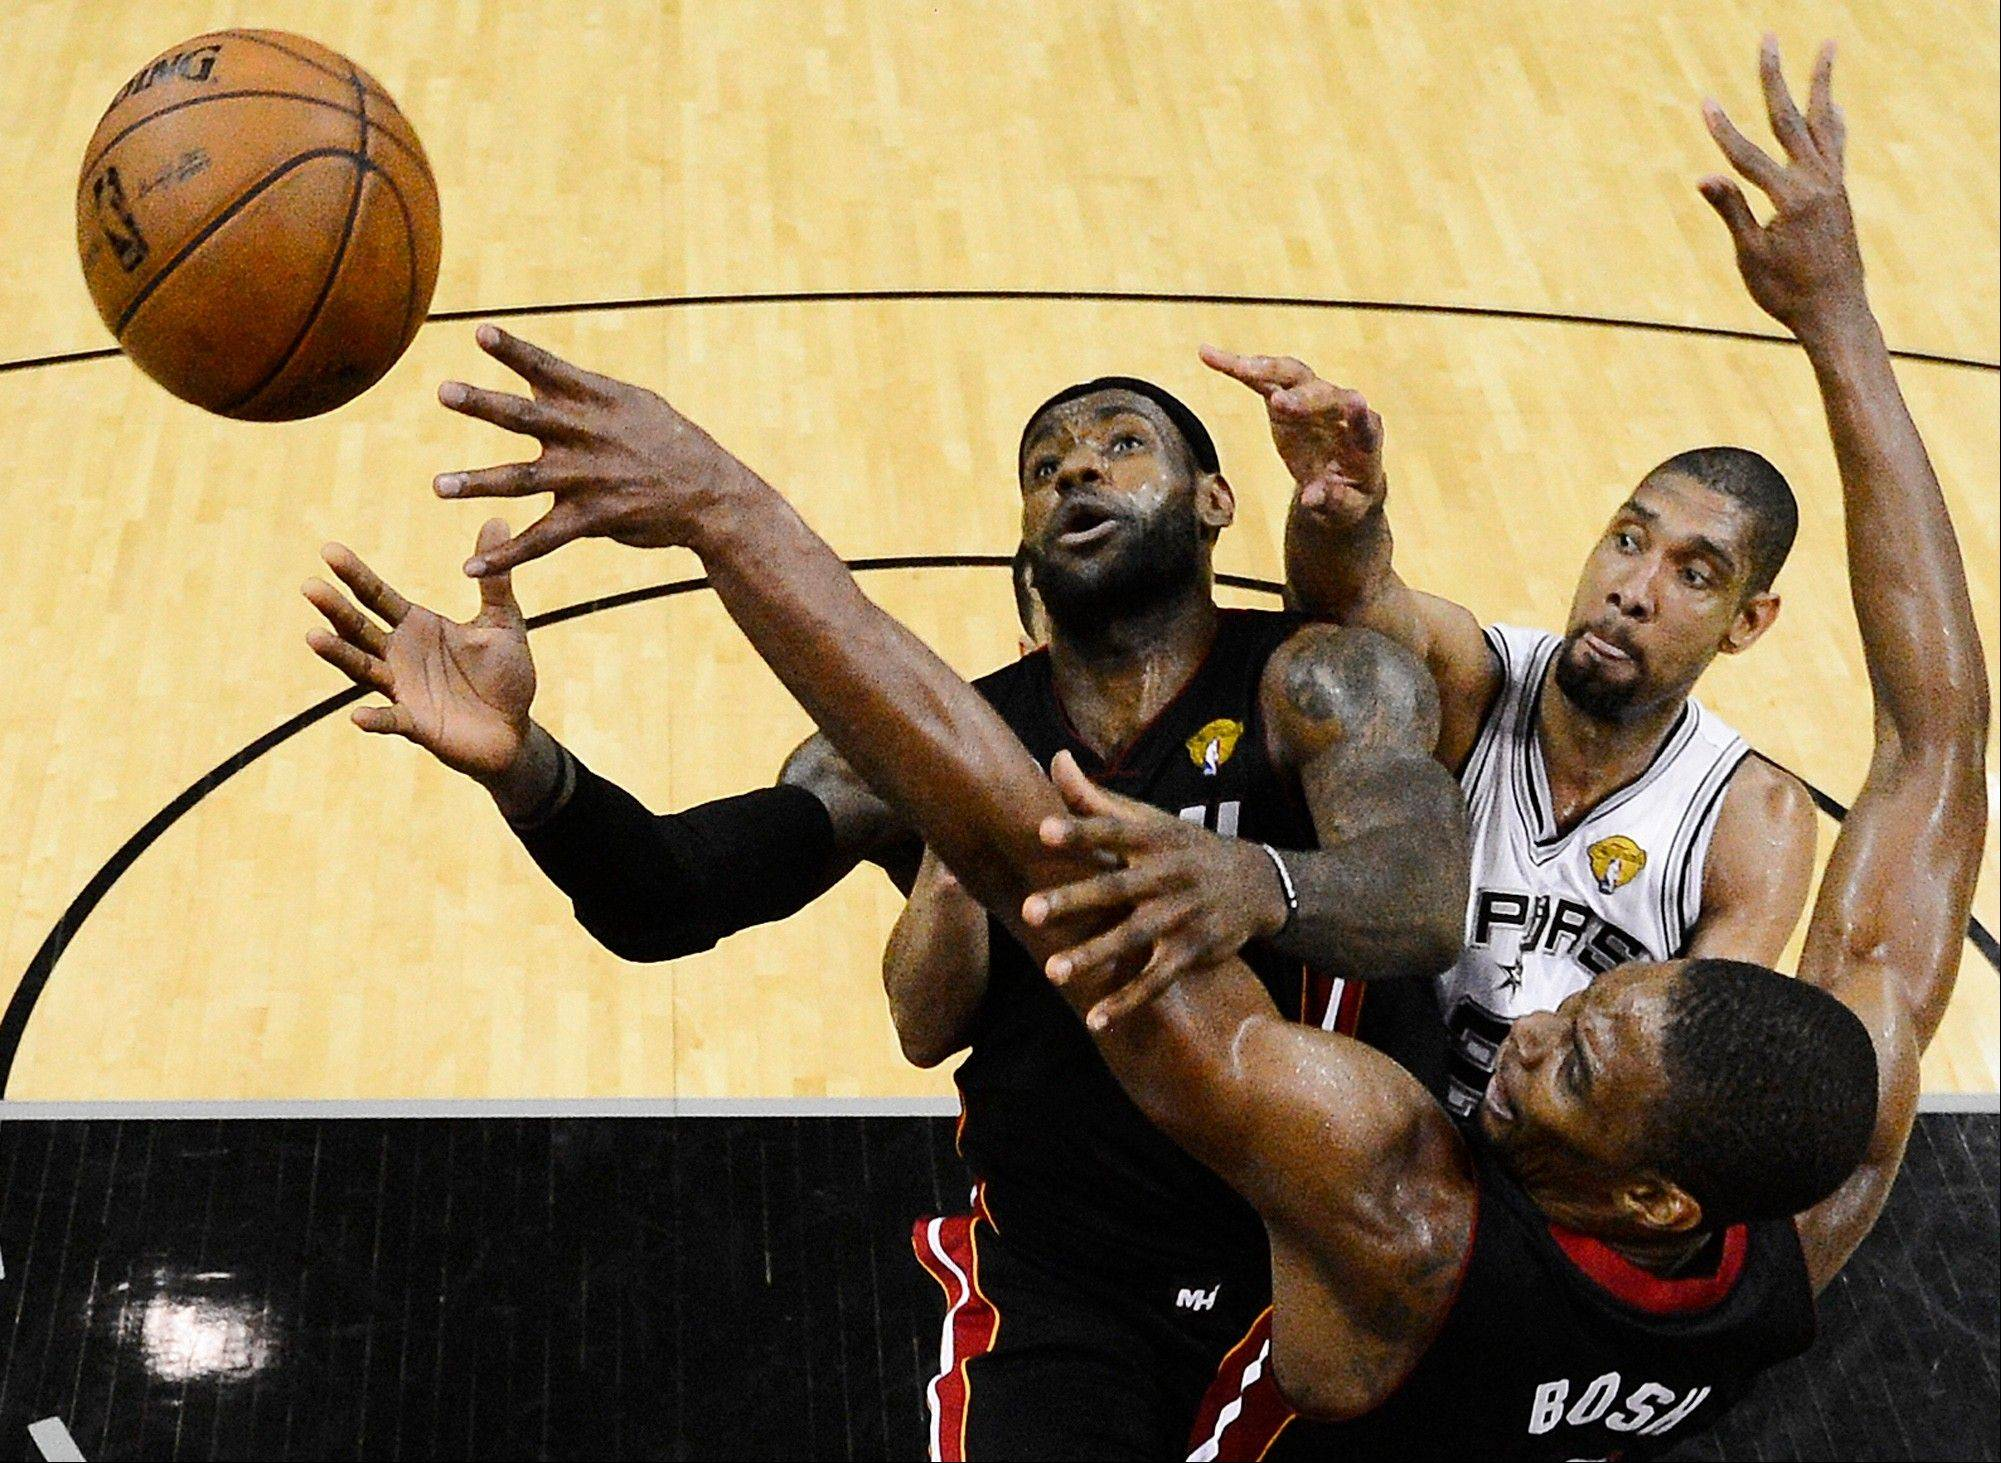 Miami Heat forward LeBron James (6), Chris Bosh (1) and the San Antonio Spurs' Tim Duncan go after a loose ball Sunday during the second half at Game 5 of the NBA Finals in San Antonio. The Spurs won 114-104.